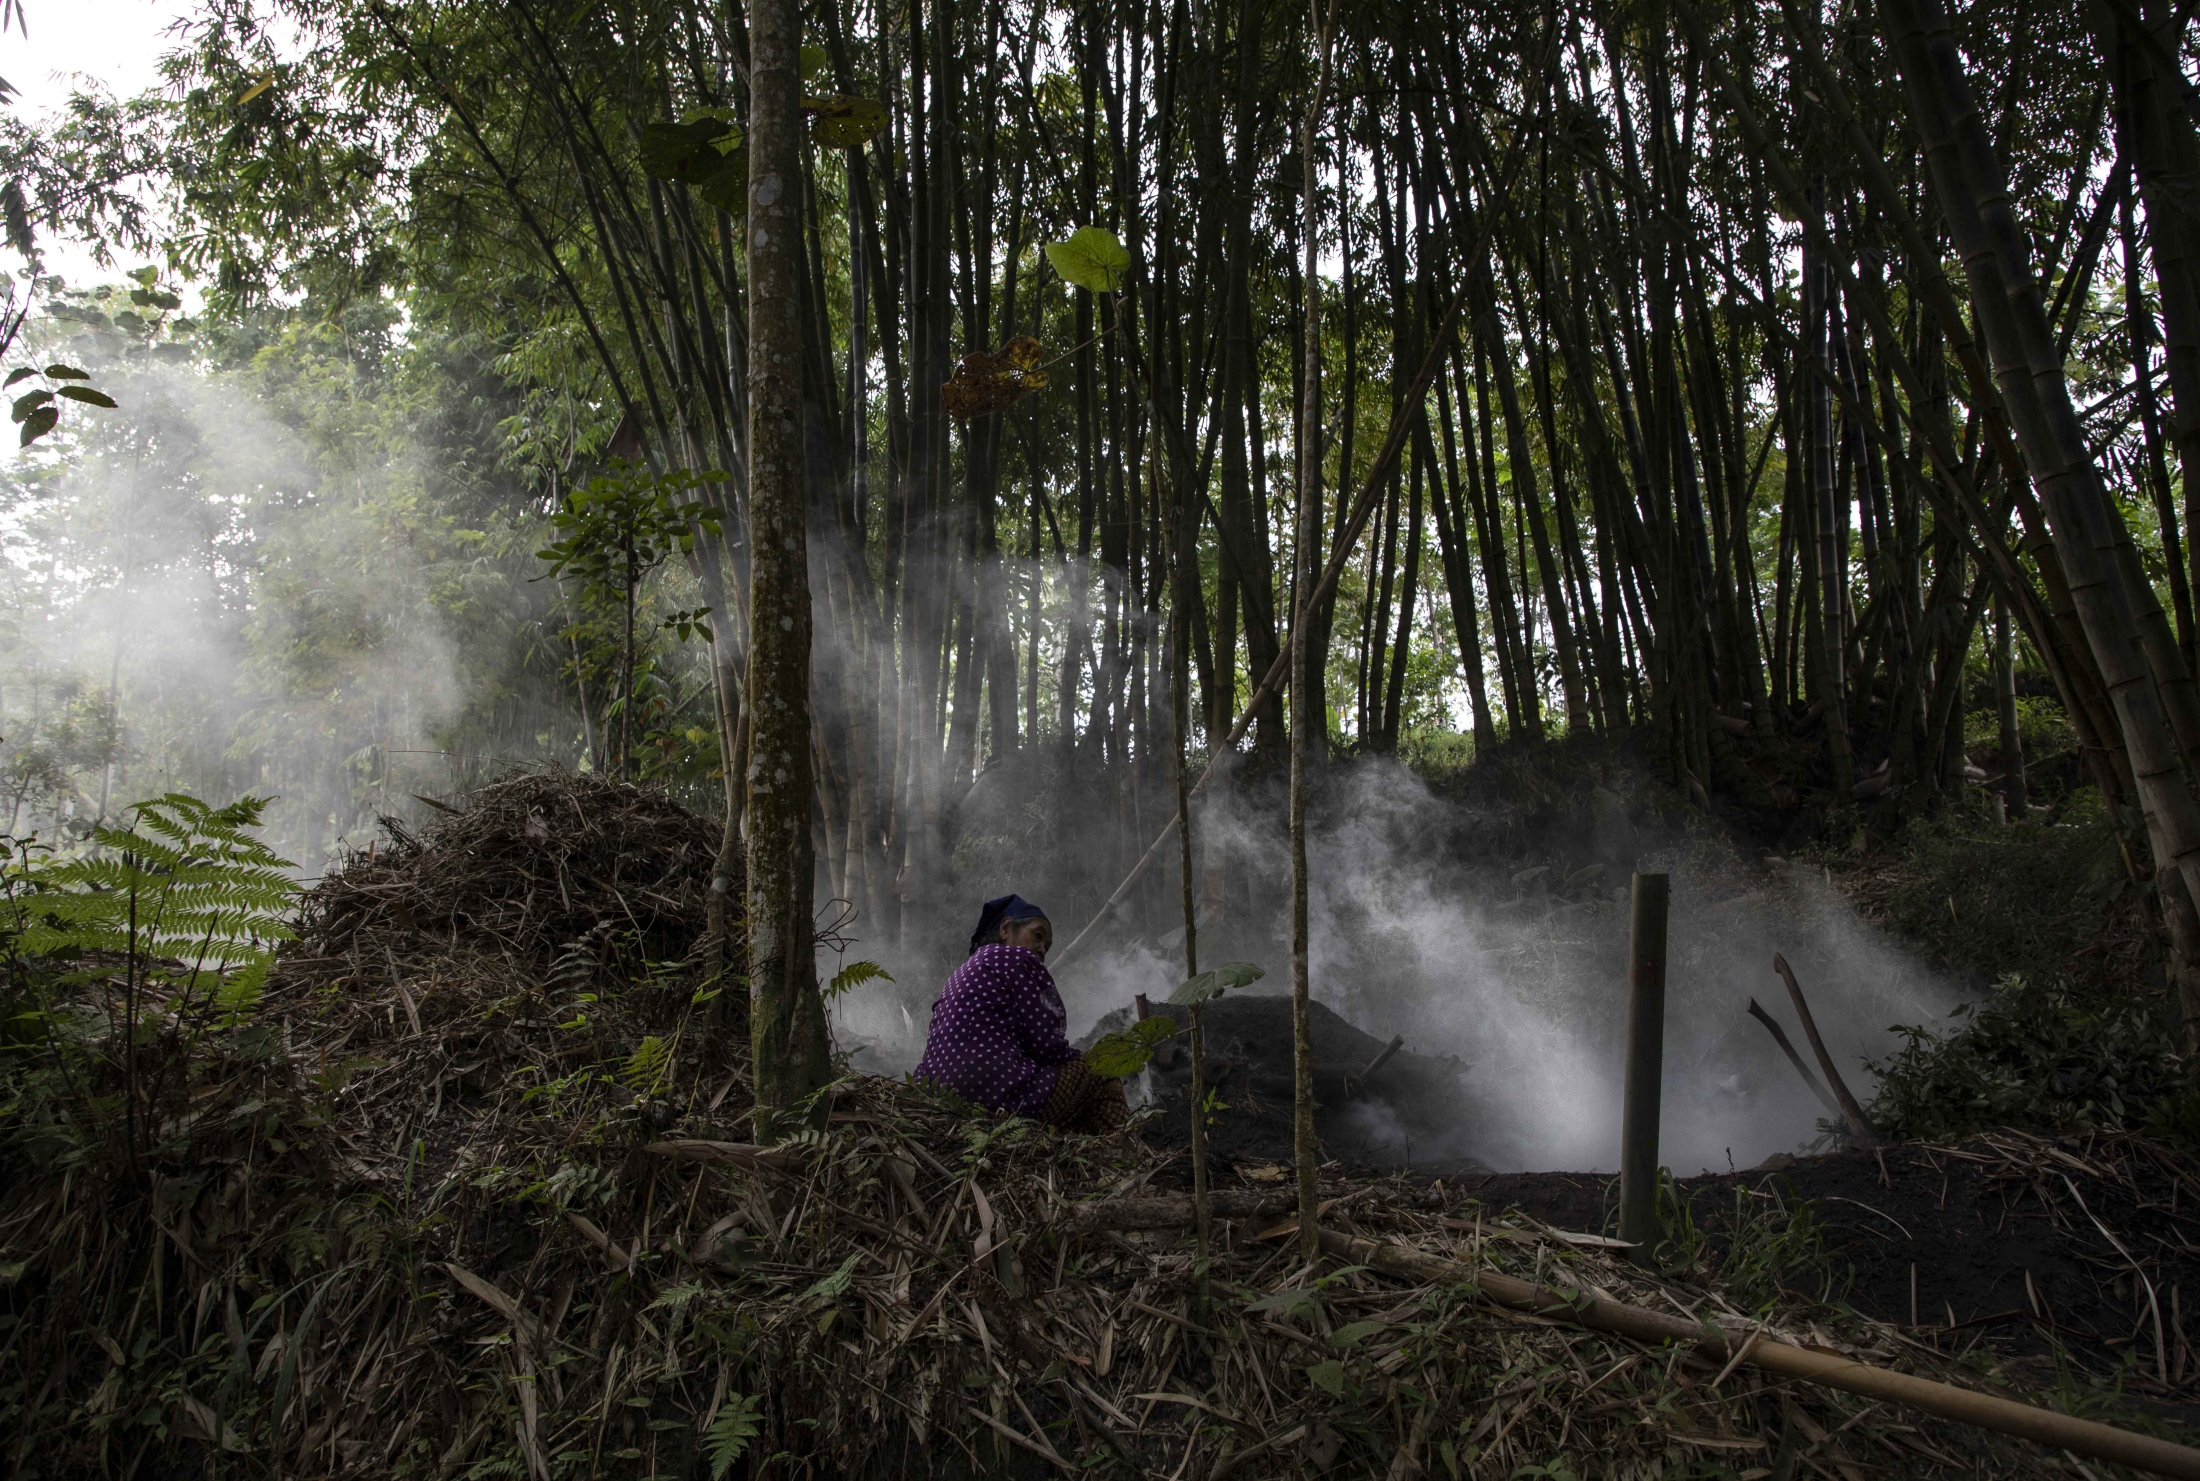 Early in the morning, Mbah (grandmother) Sudiwiyono, 77, patiently observes the slowly burning fire she regularly lights to make charcoal. She is the only inhabitant of Palemsari, one of the highest villages on Mount Merapi. While all members of her community either died in the last devastating volcanic eruption (in 2010) or moved to a relocation village, she decided to stay in the dense forest as it allows her to be close to nature and on the land that belongs to her.